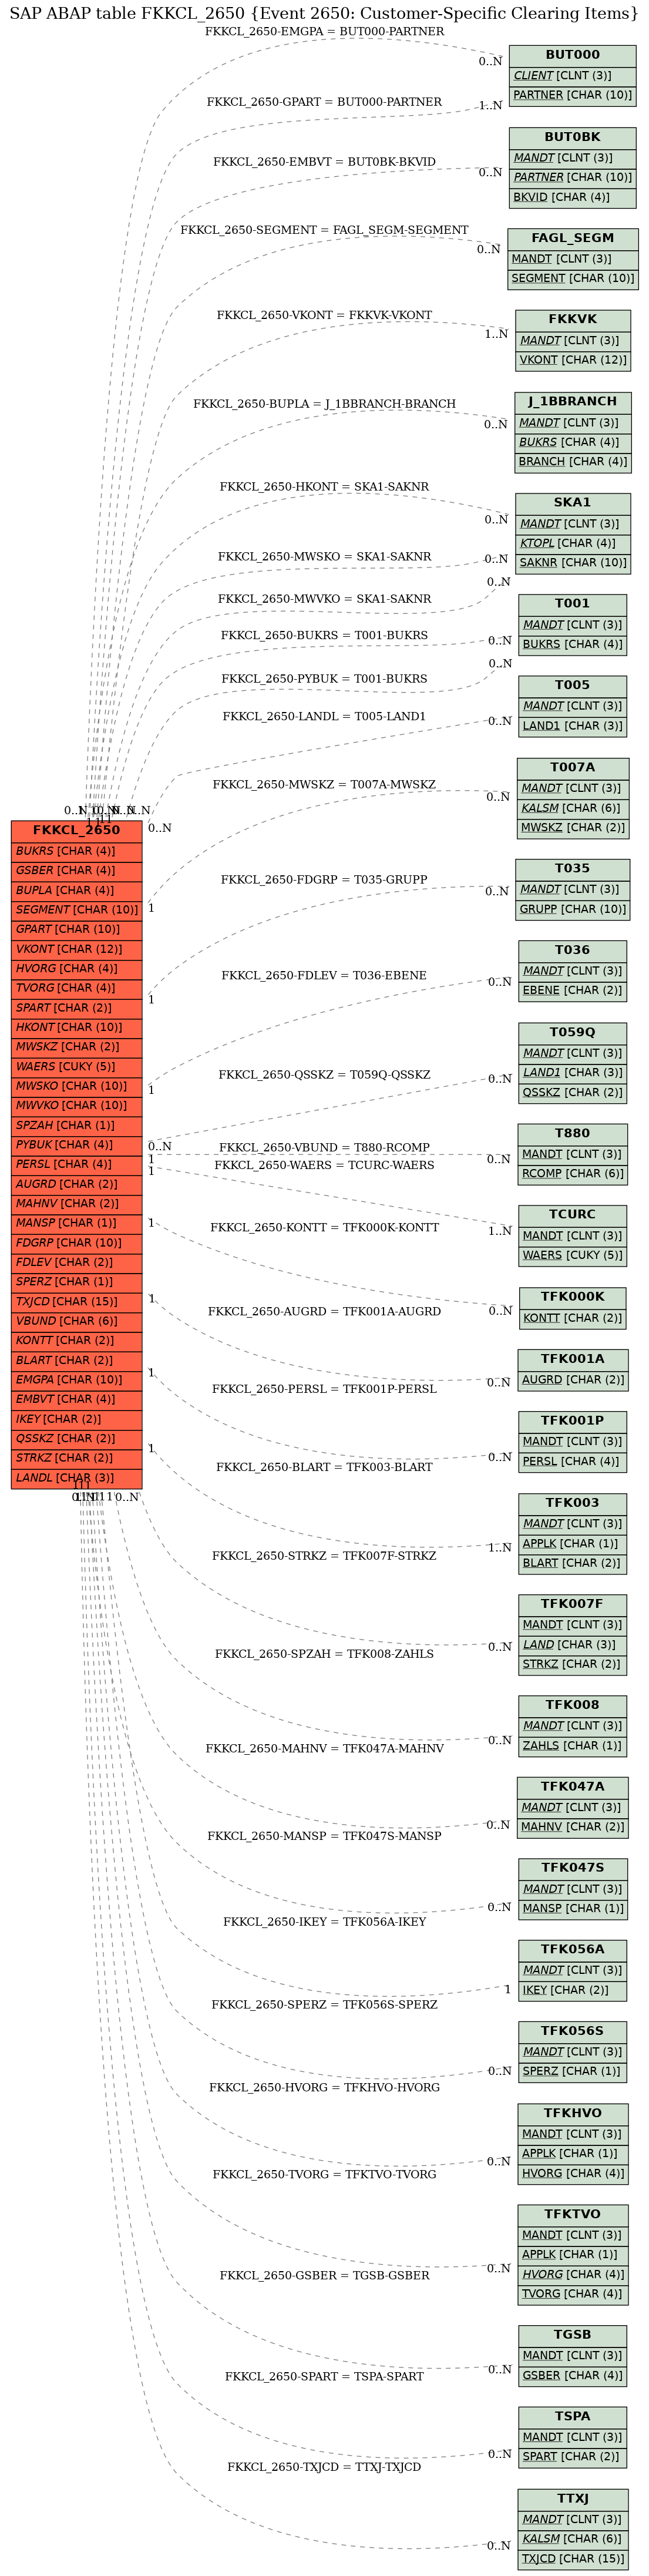 E-R Diagram for table FKKCL_2650 (Event 2650: Customer-Specific Clearing Items)